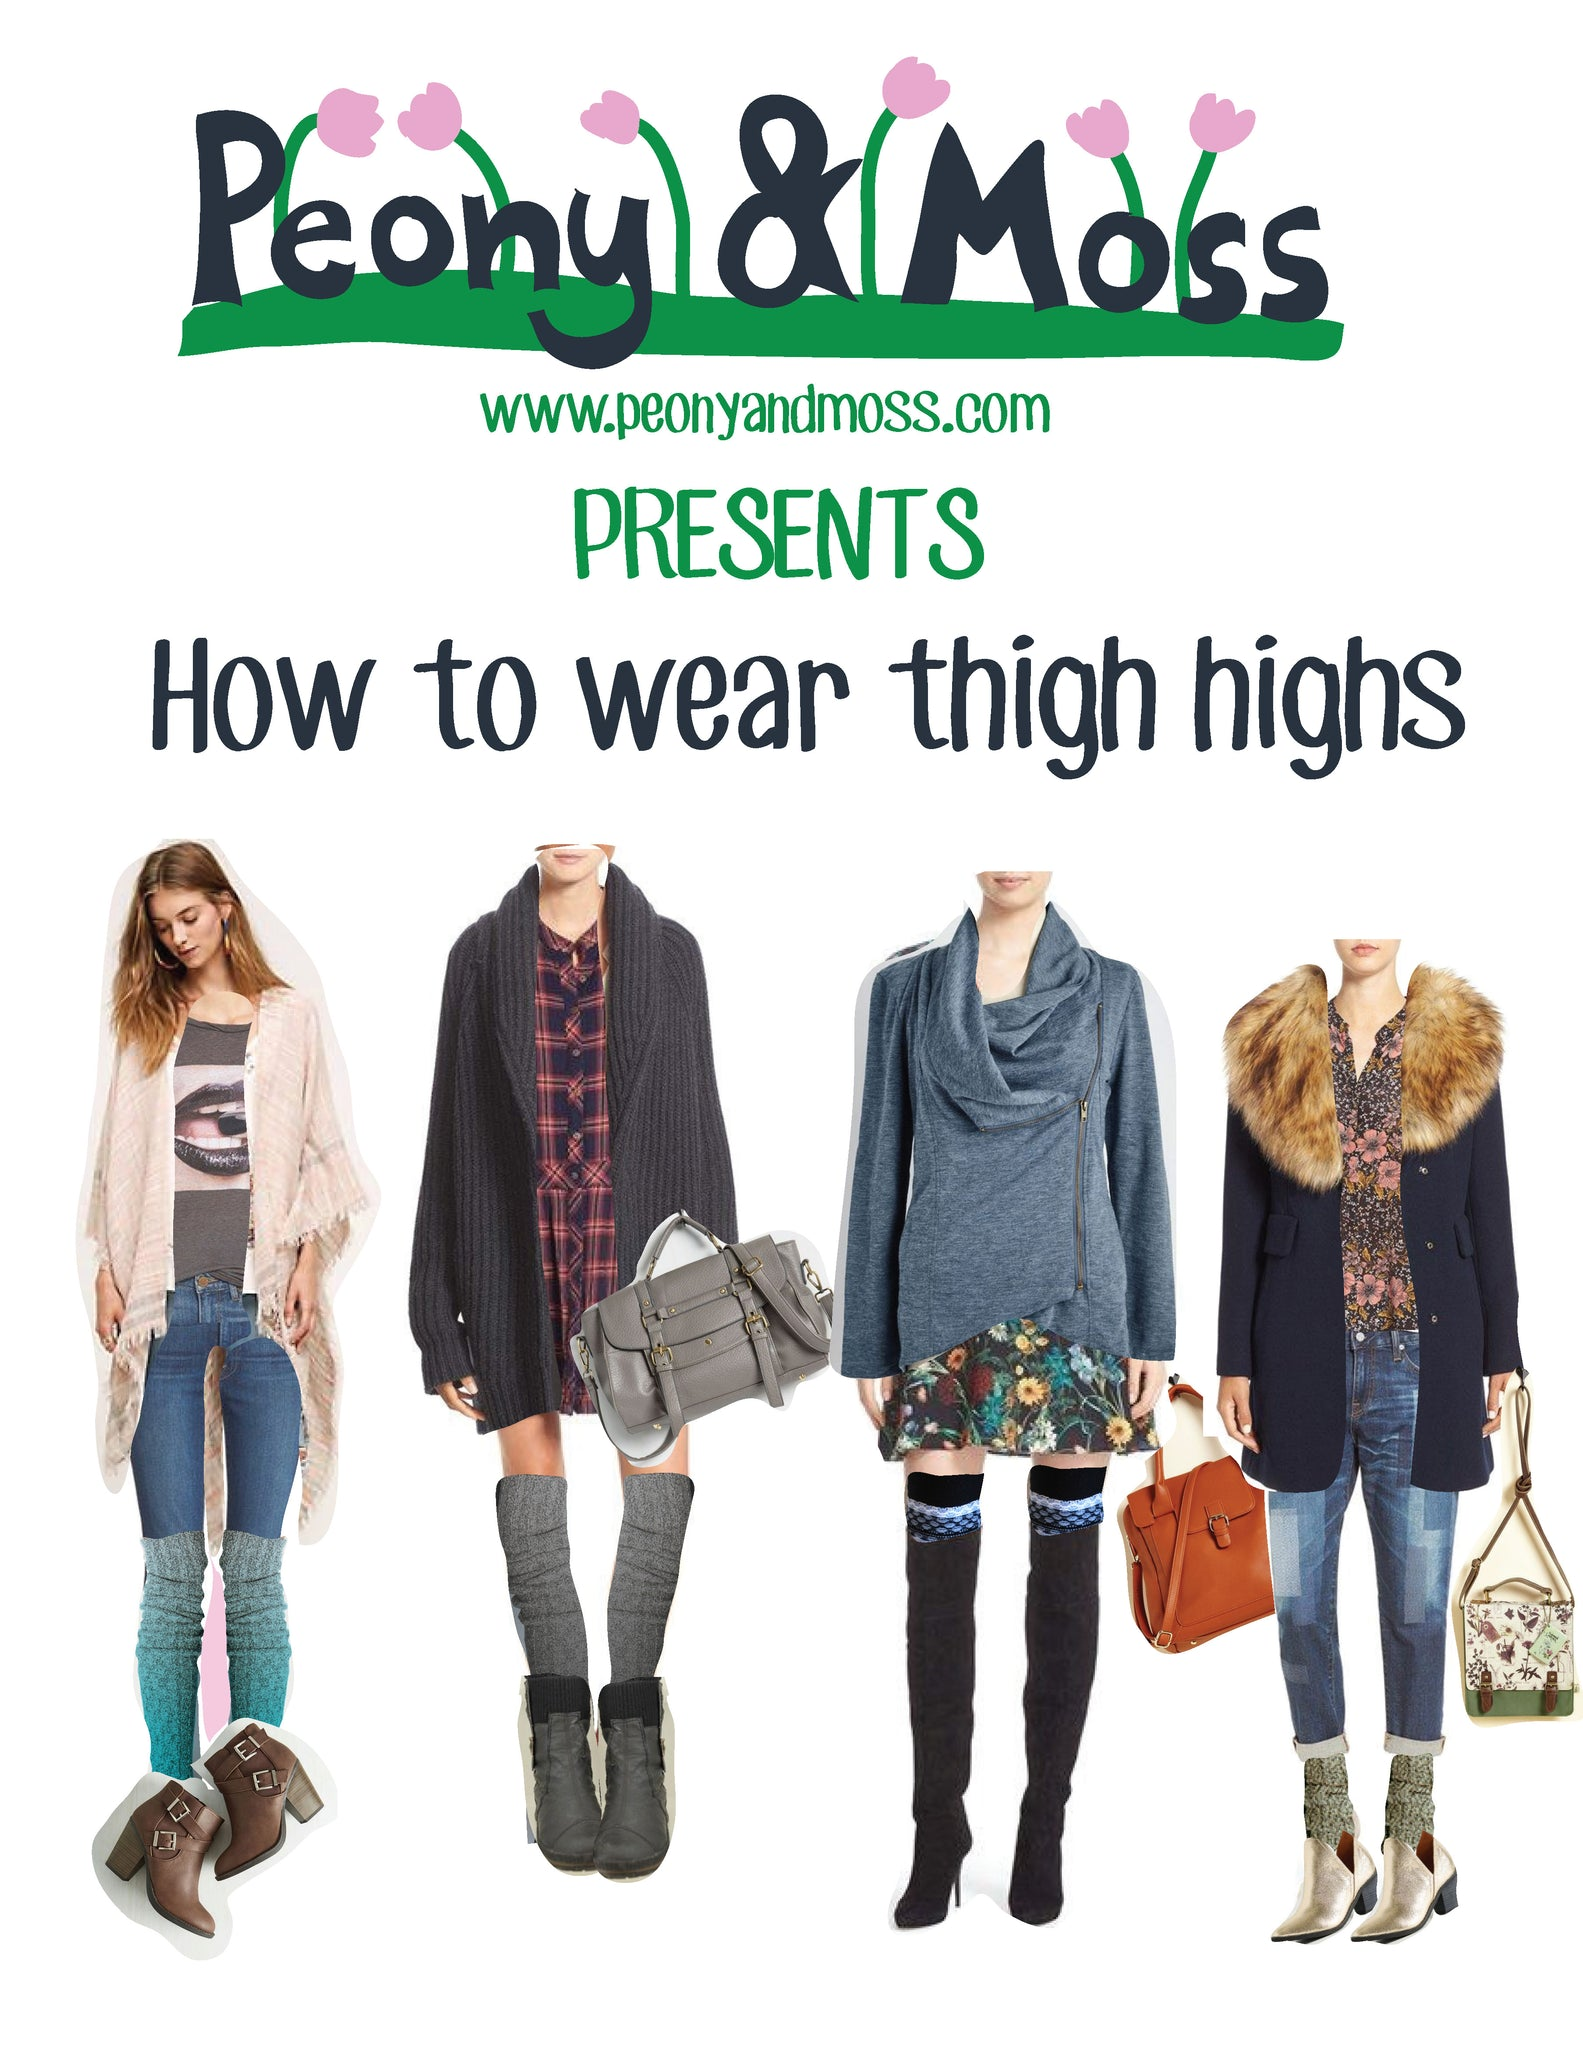 How to Wear Thigh Highs